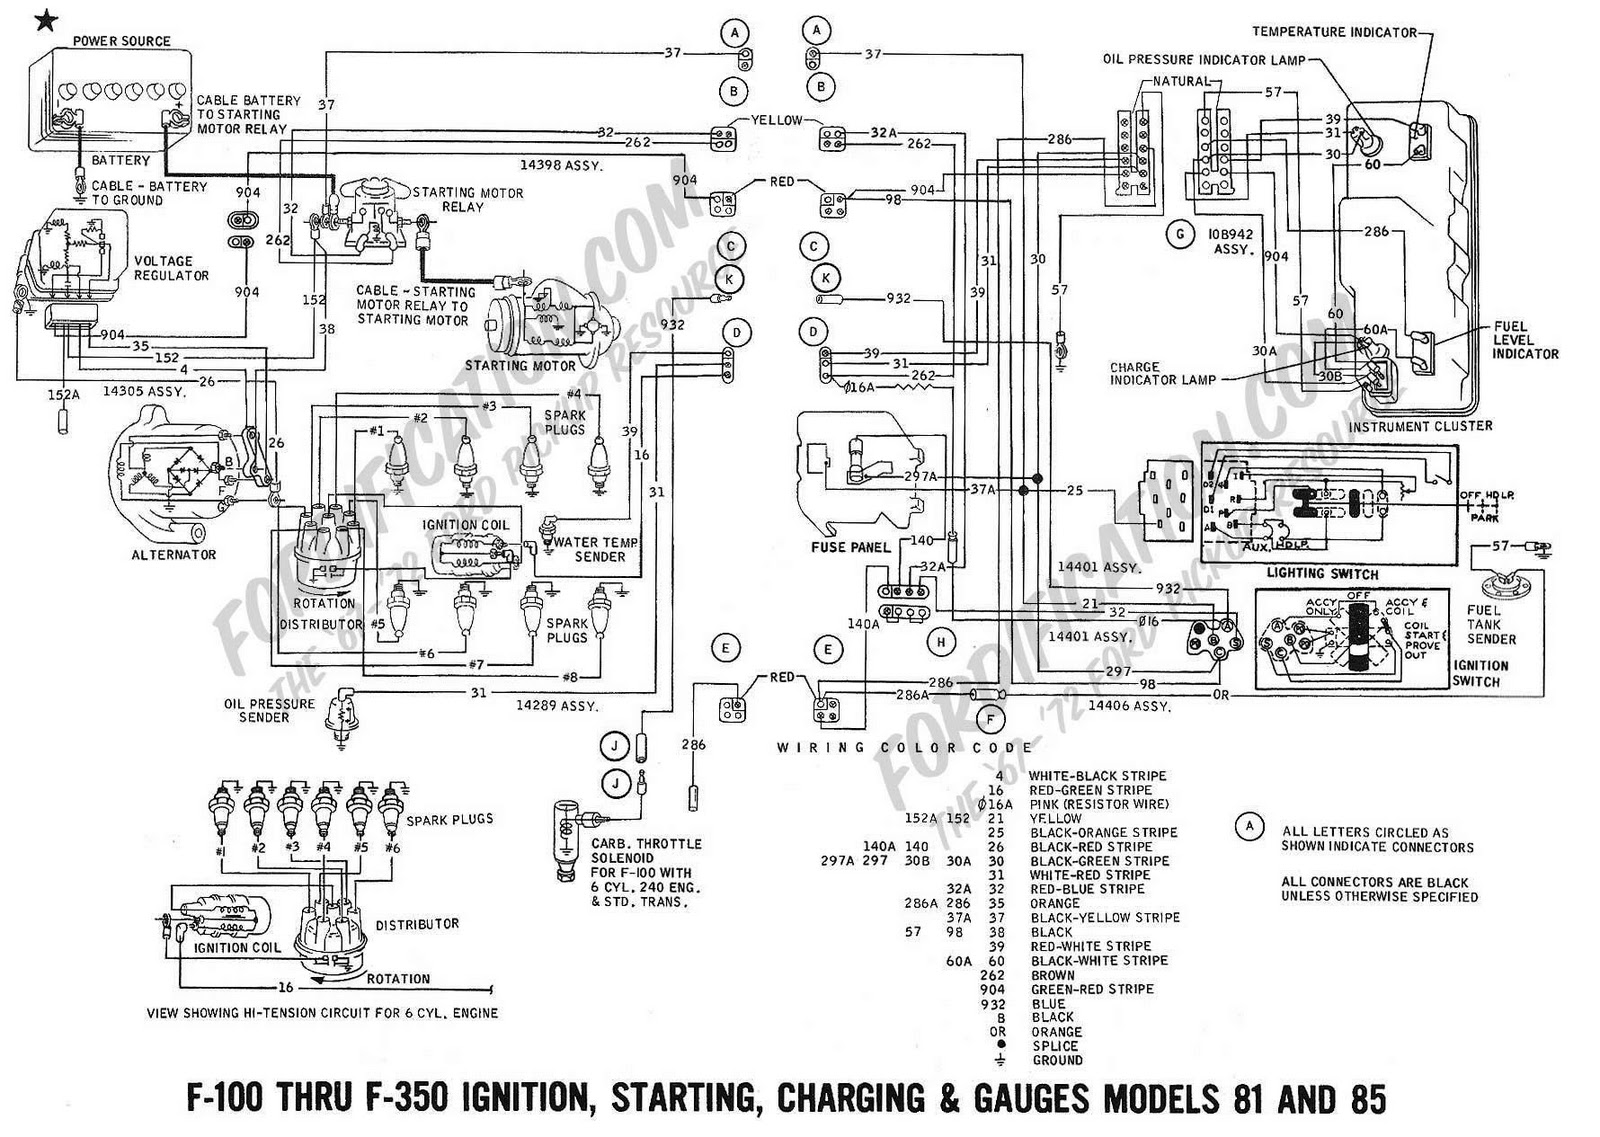 1993 Dodge Dakota Fuel System Wiring Diagram Data Diagrams 1969 Ford F100 F350 Ignition Starting Charging And W350 1992 Ram 52l Engine Compartment